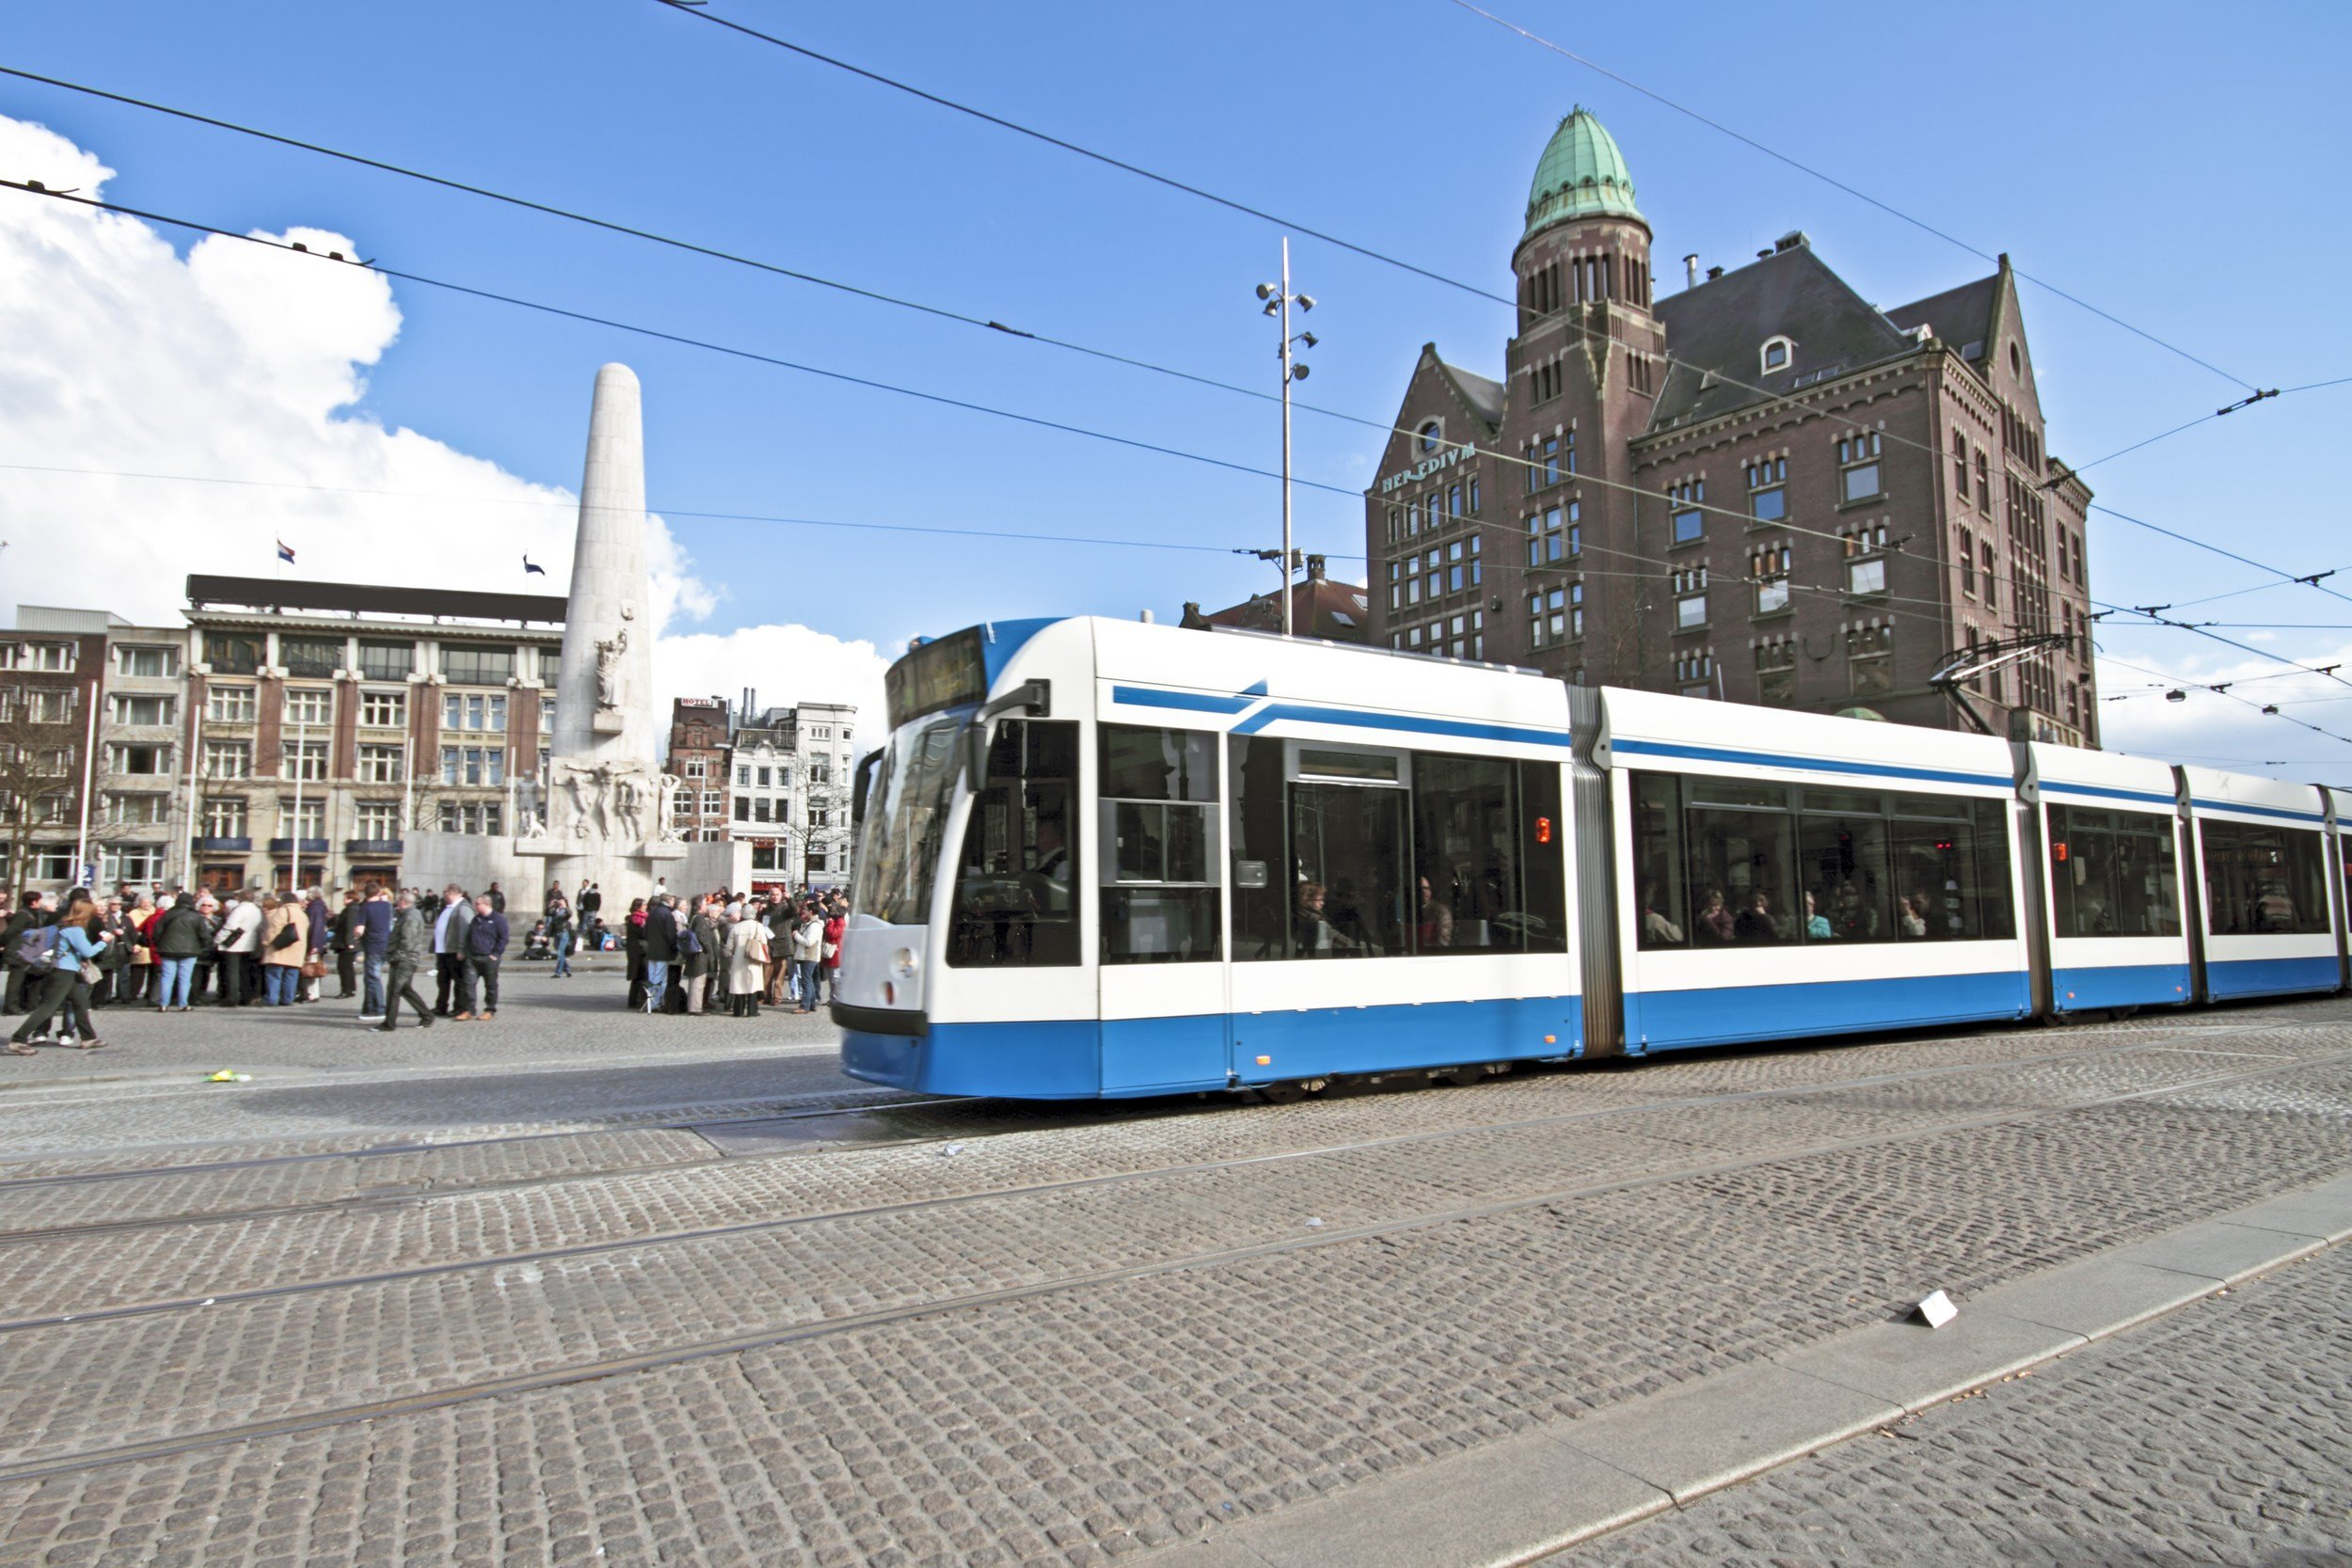 Tram at Dam Square in Amsterdam